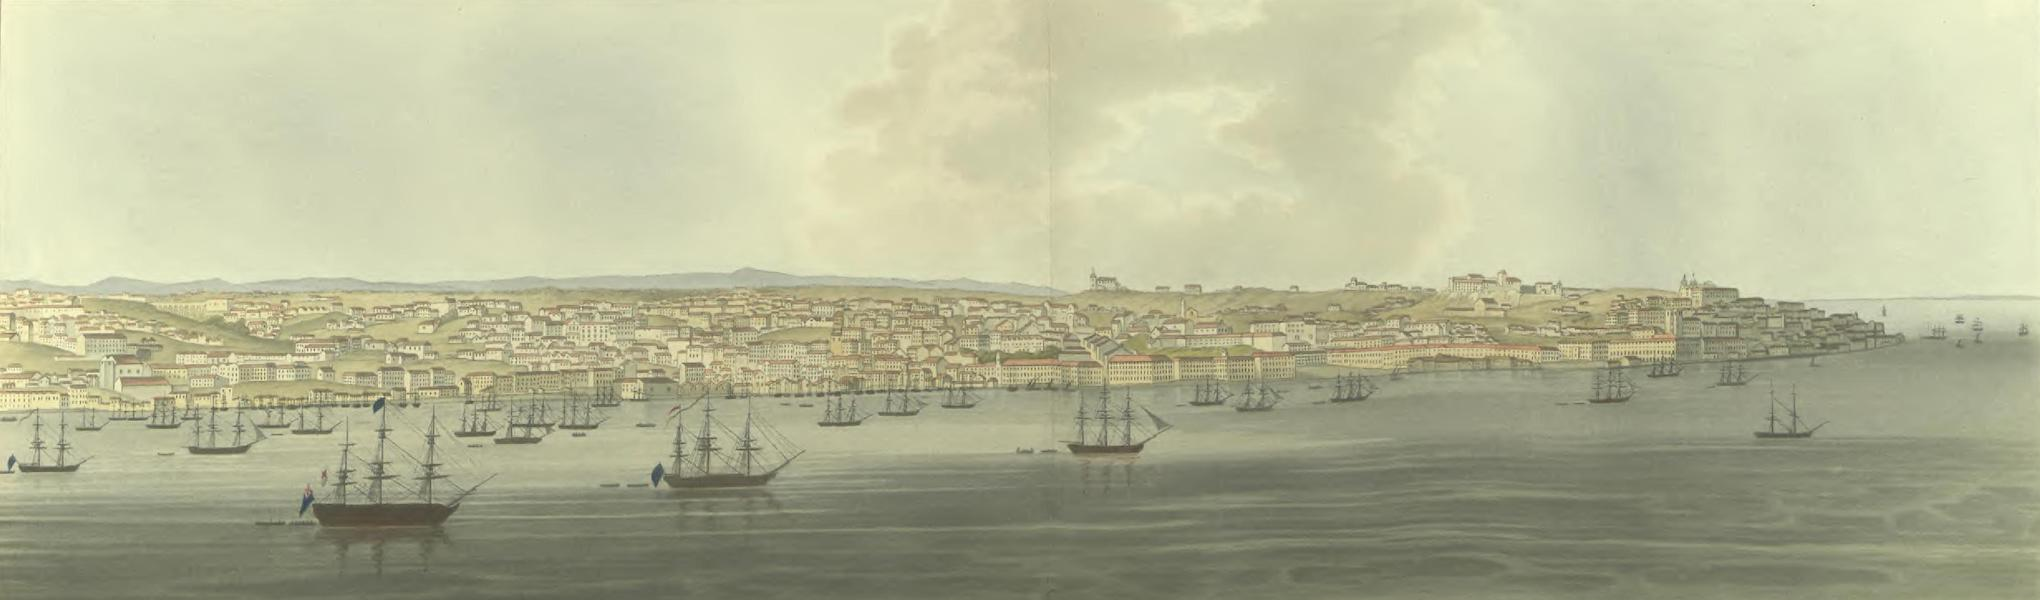 Historical, Military, and Picturesque Observations on Portugal Vol. 2 - Mouth of the Tejo (1818)